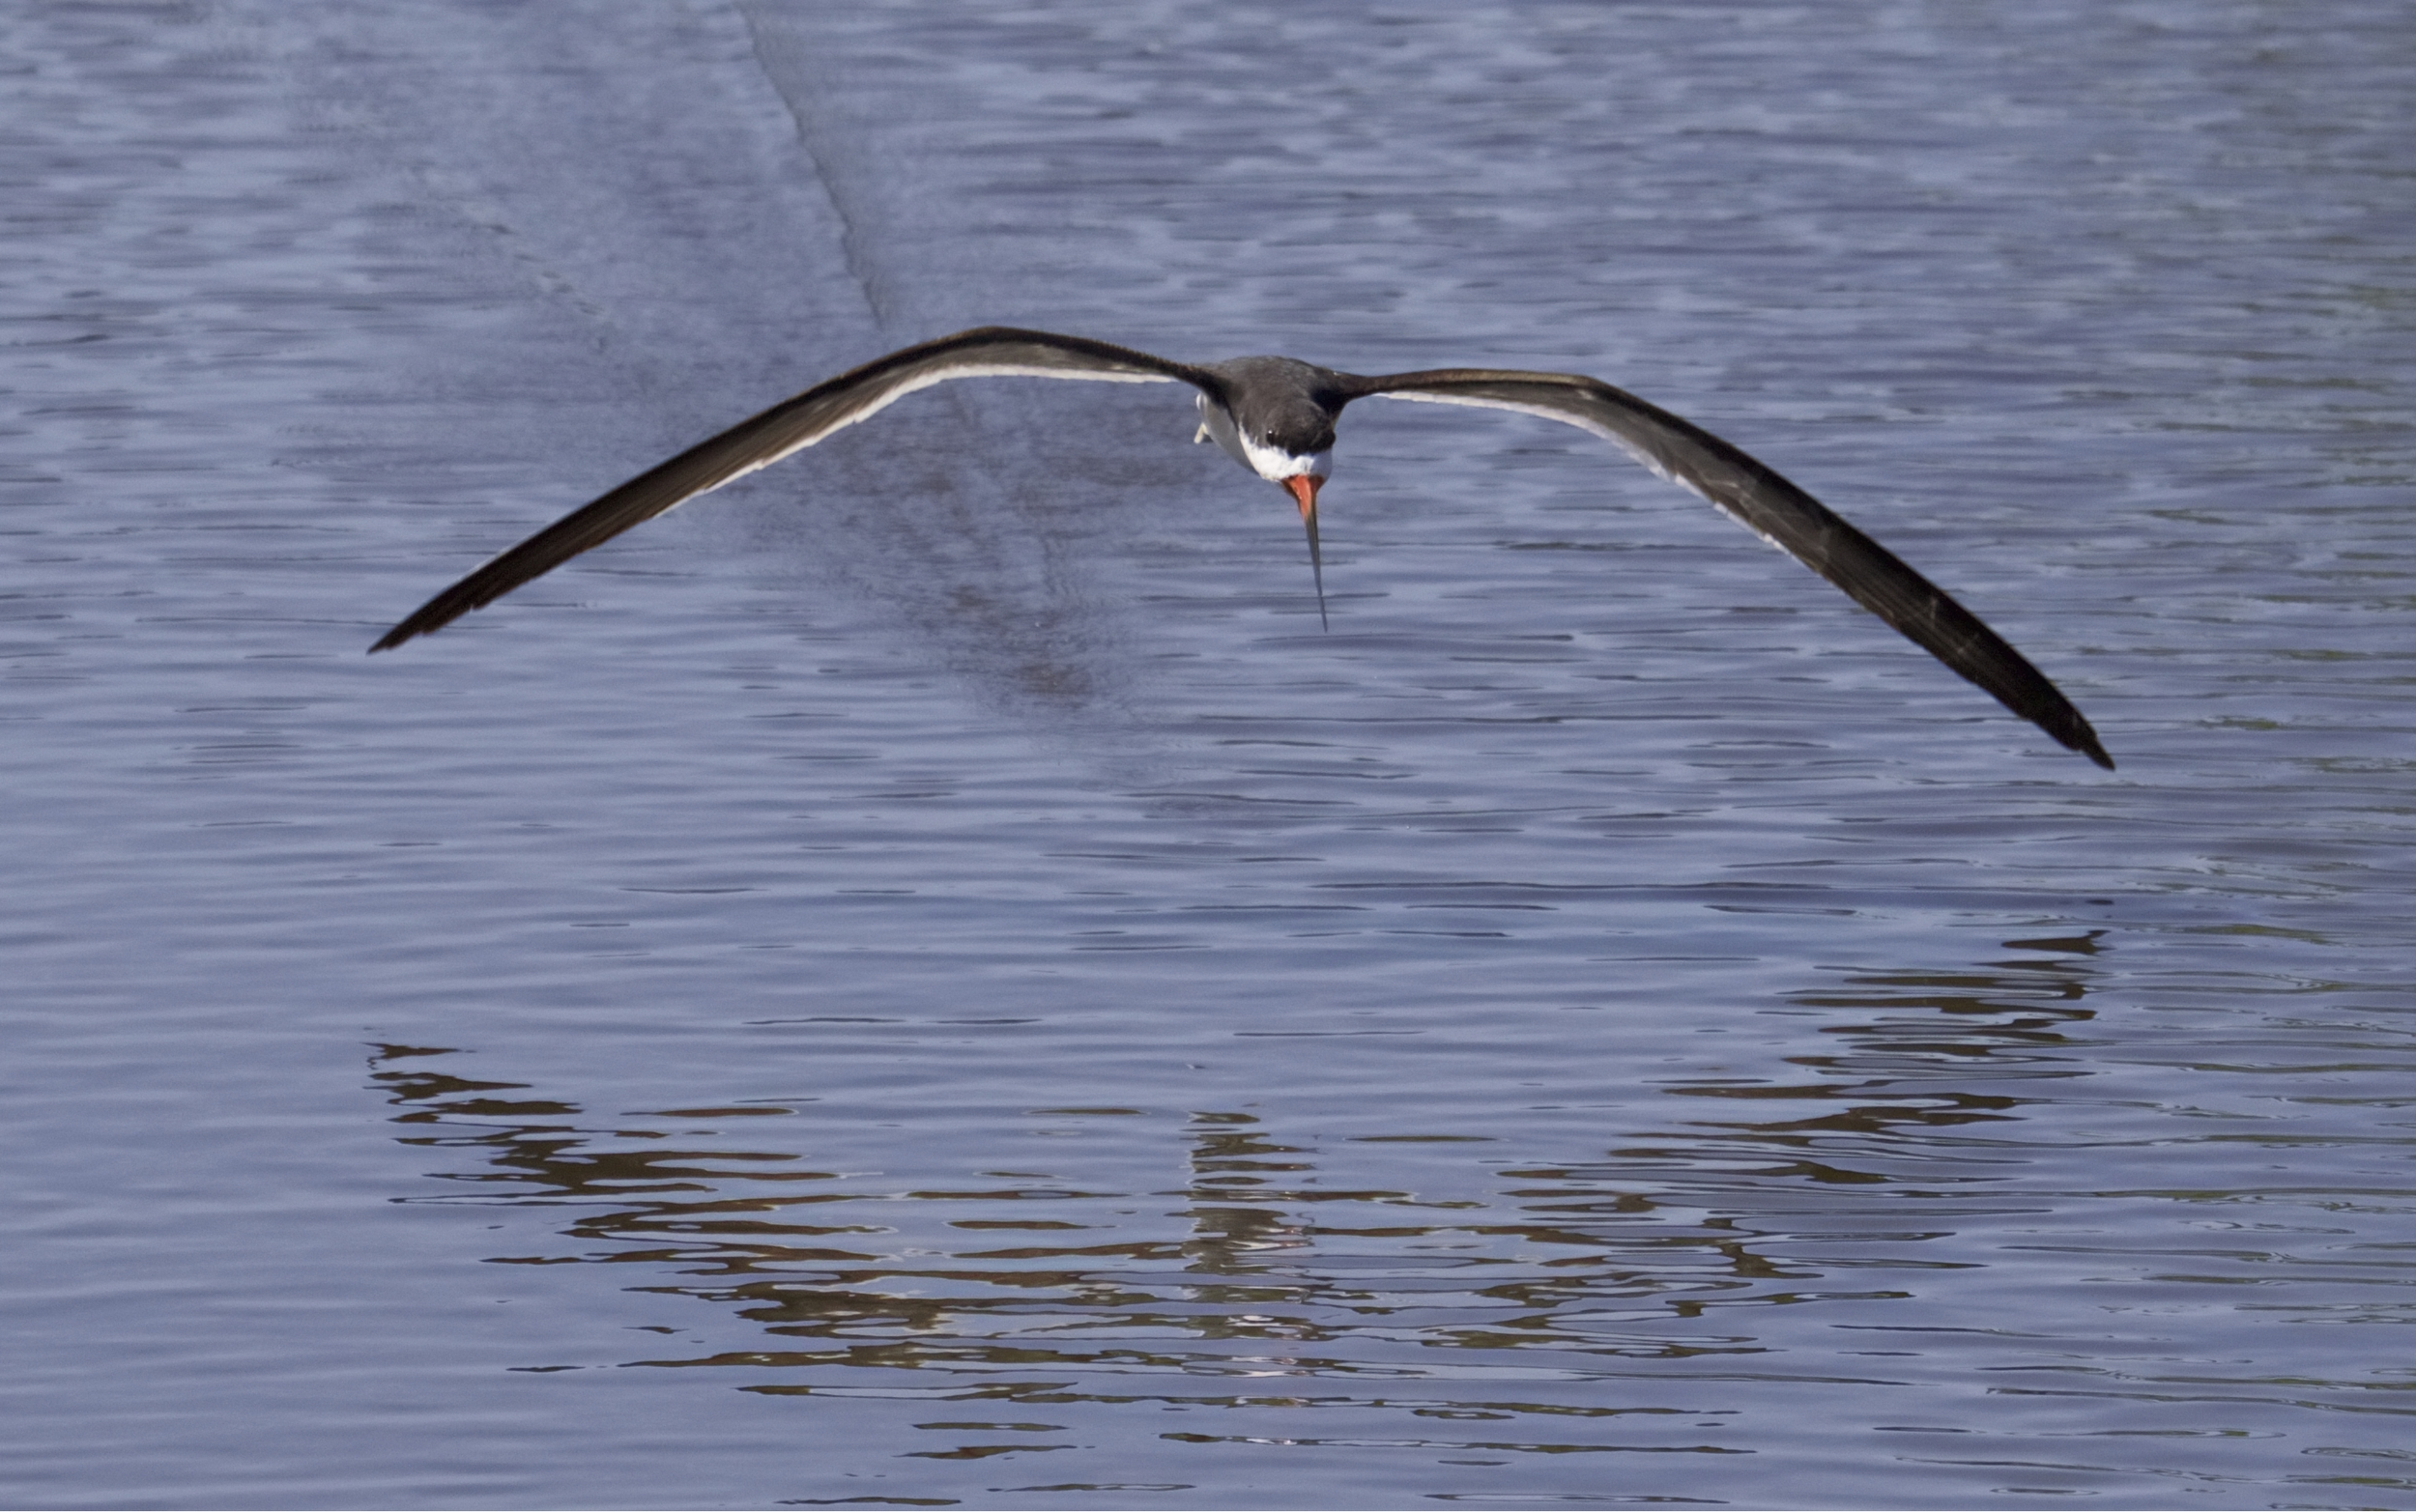 Got to remember to keep that beak in the water...